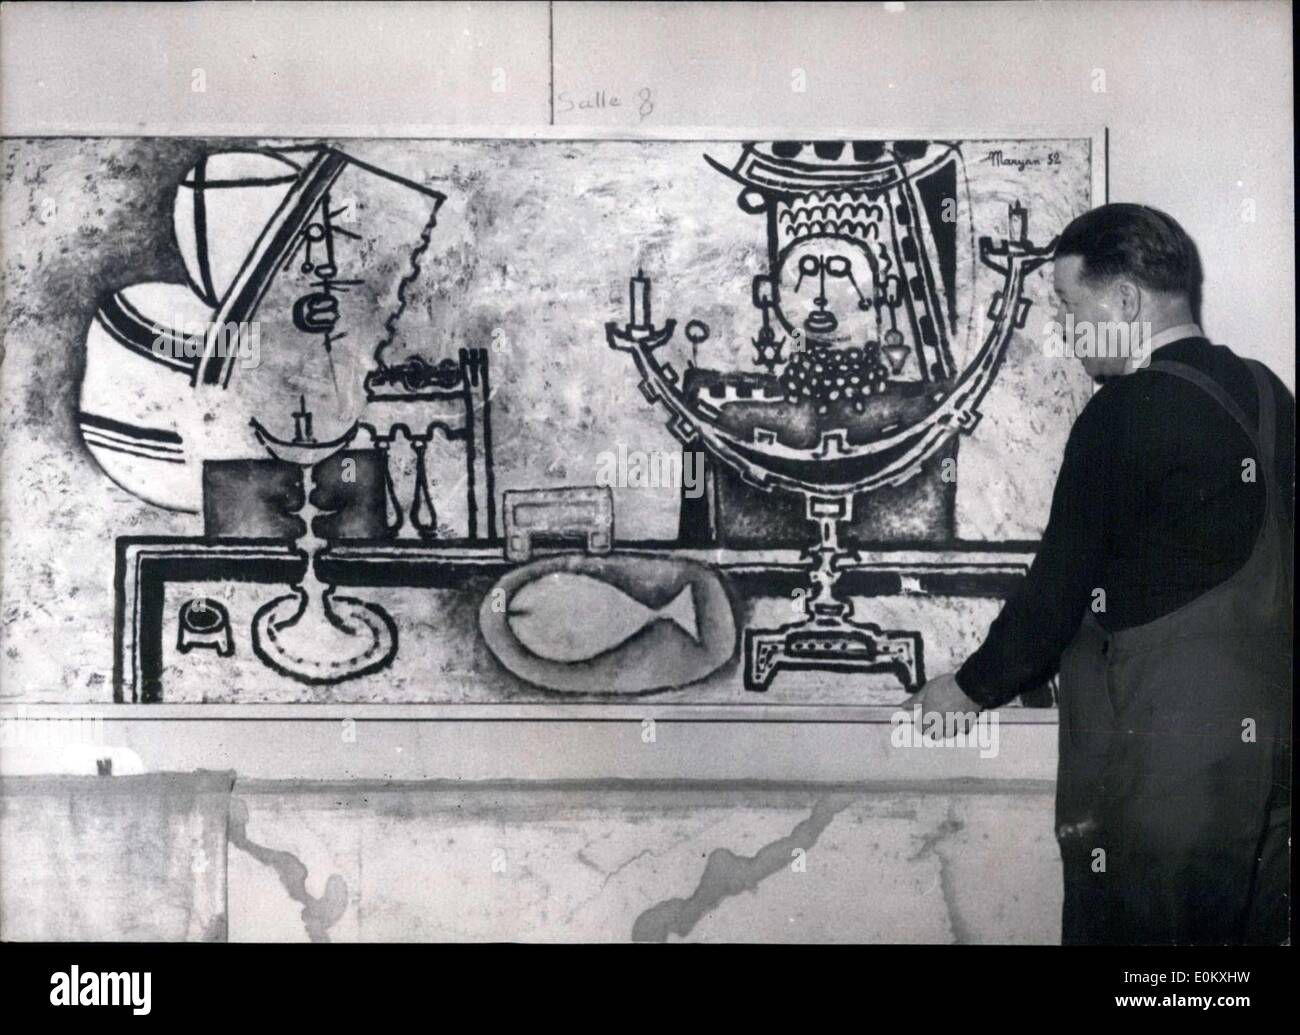 Oct. 07, 1952 - Art ''Curiex Tableau'' on display in NYC - Stock Image